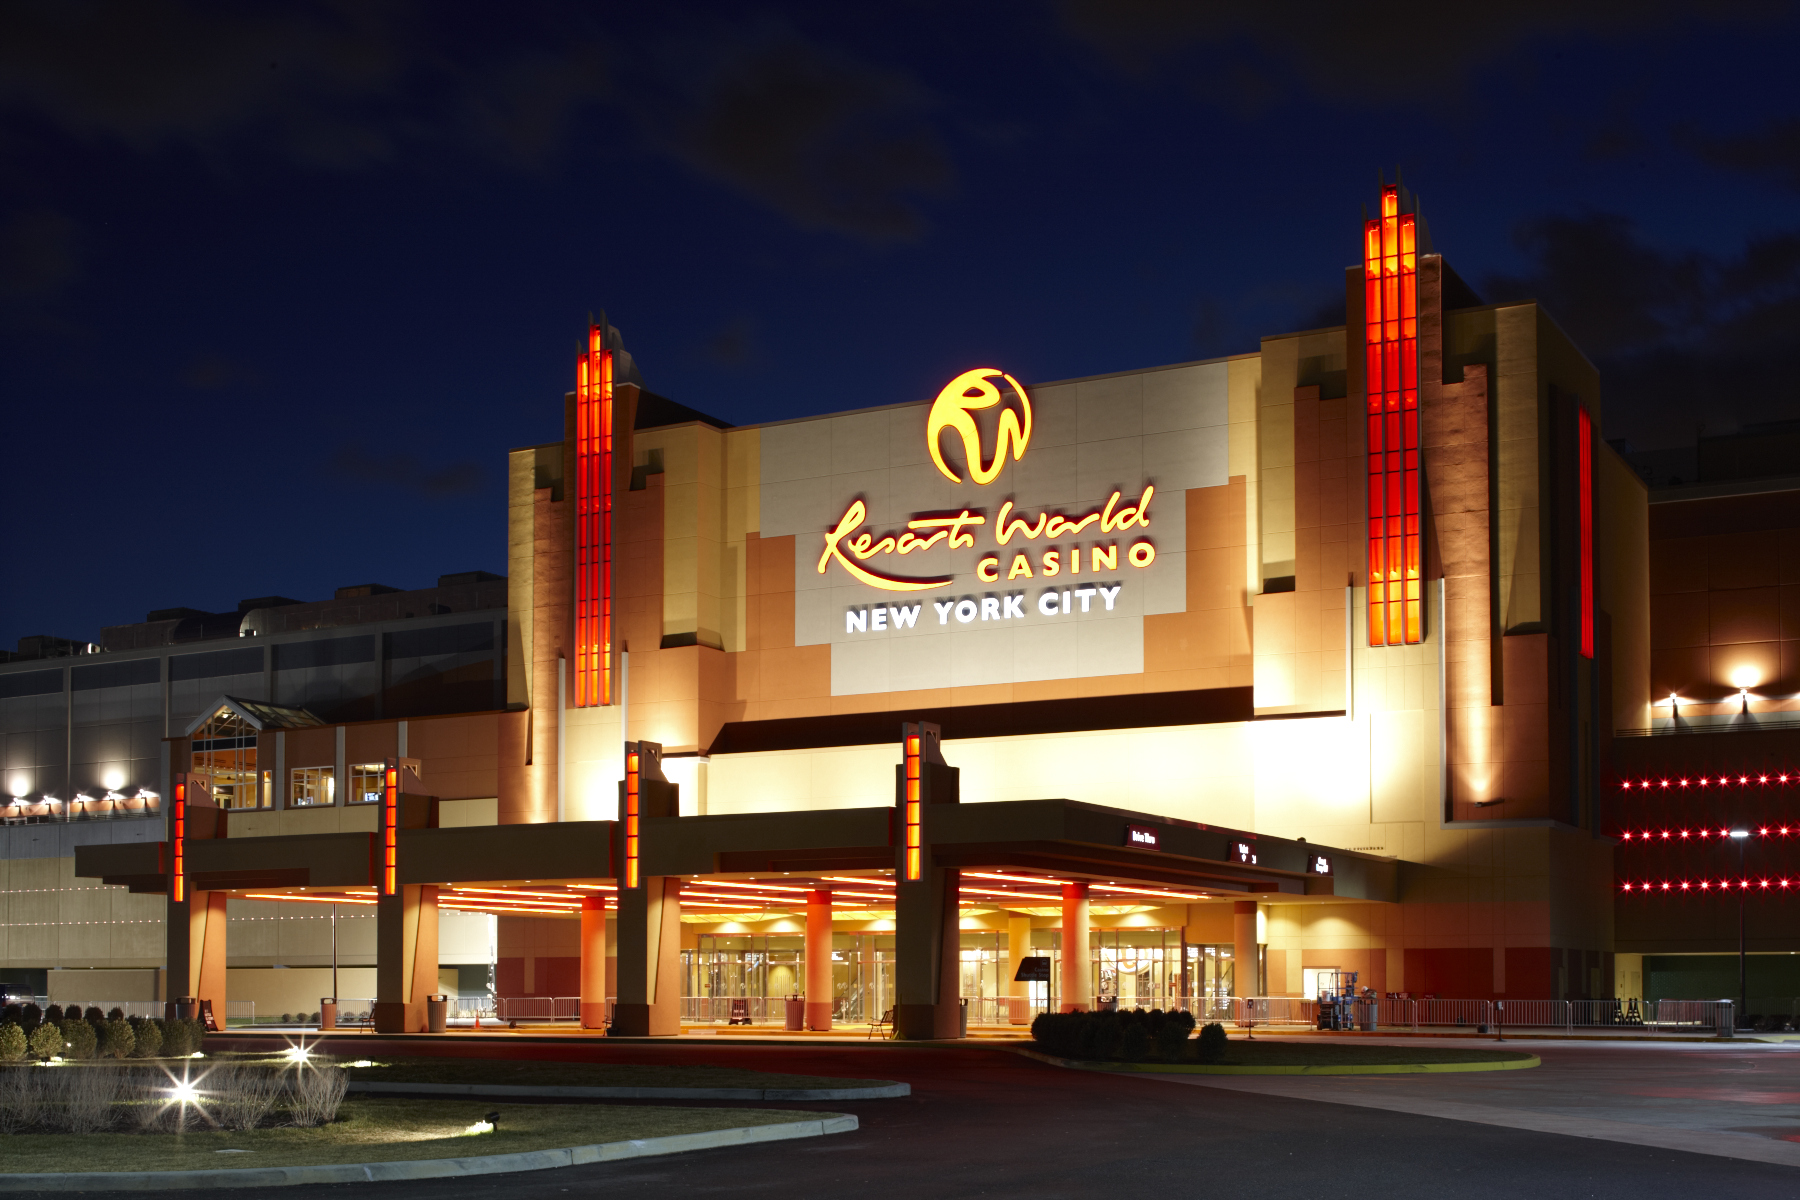 Lugares para comer no hollywood casino